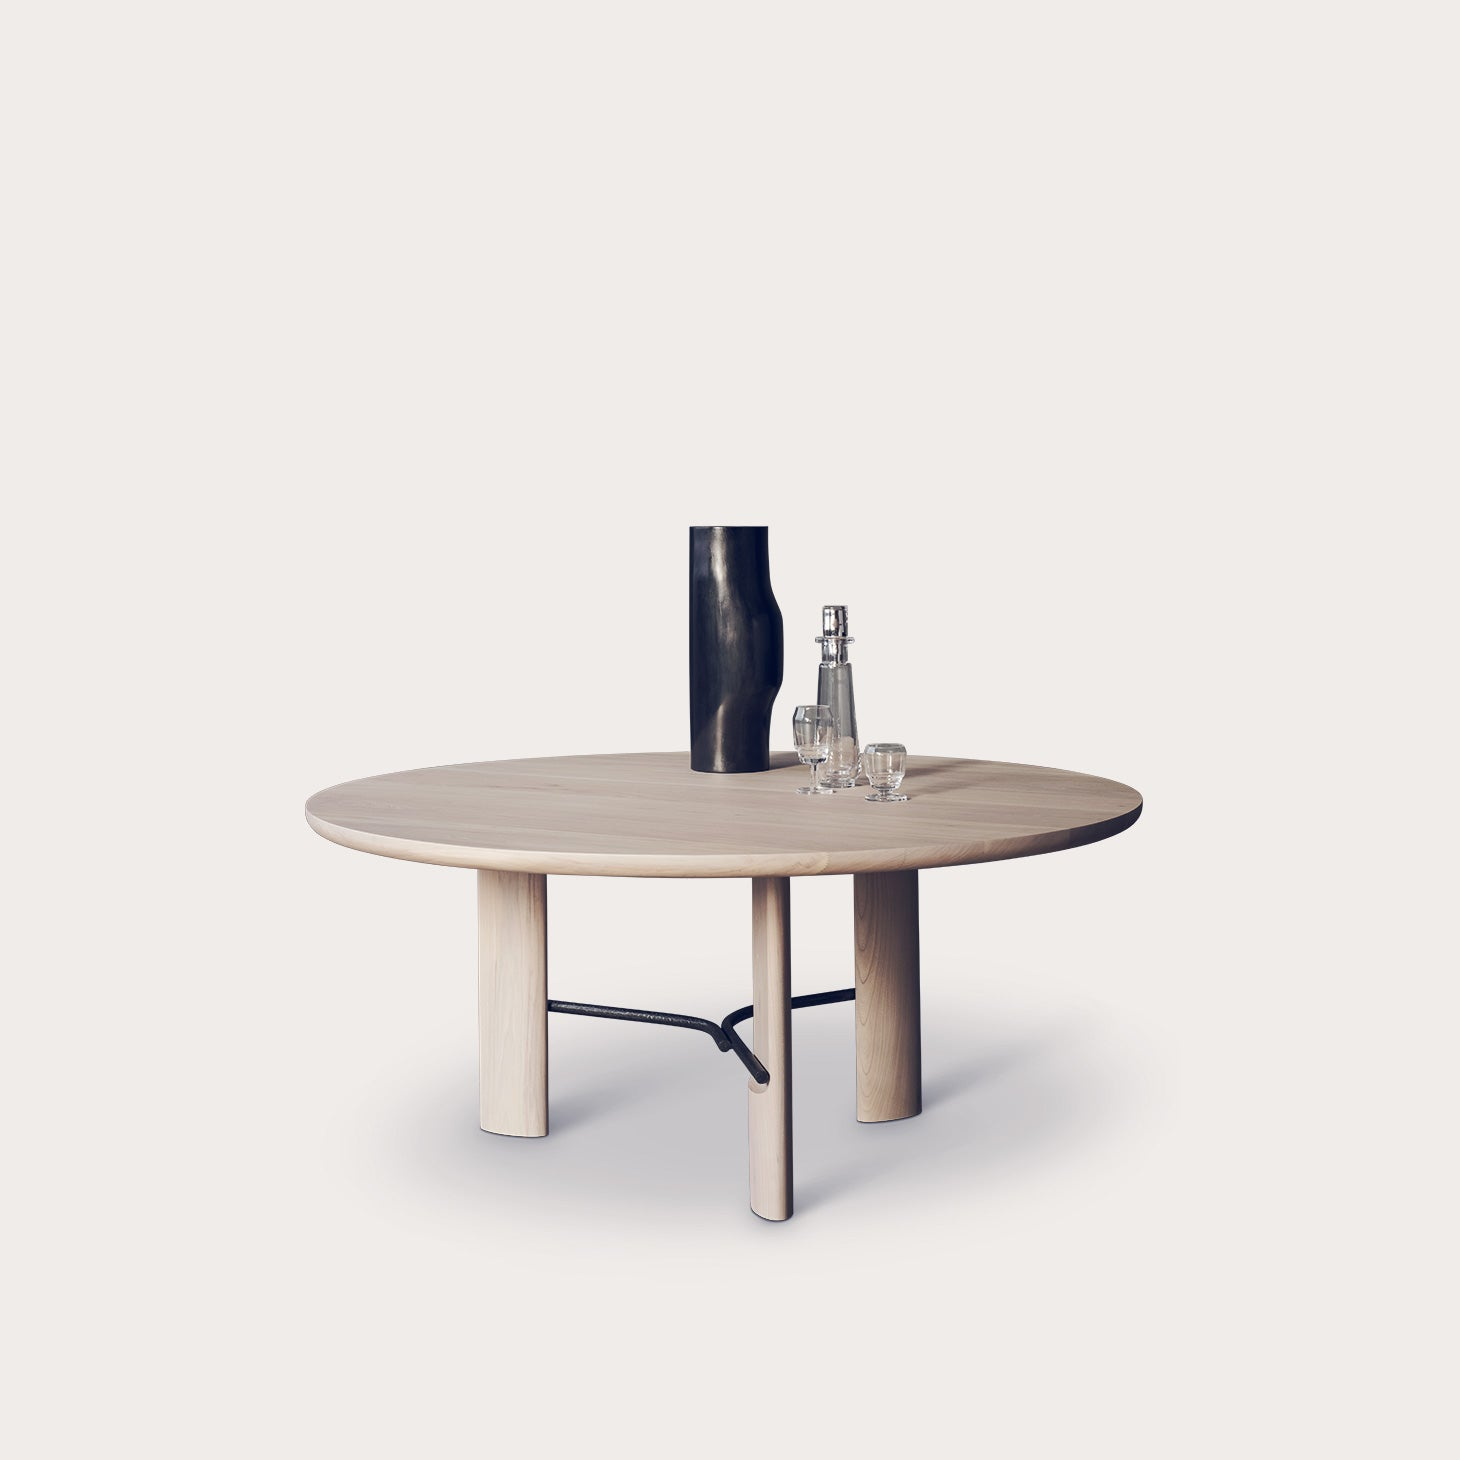 HUB Tables Christophe Delcourt Designer Furniture Sku: 765-230-10022